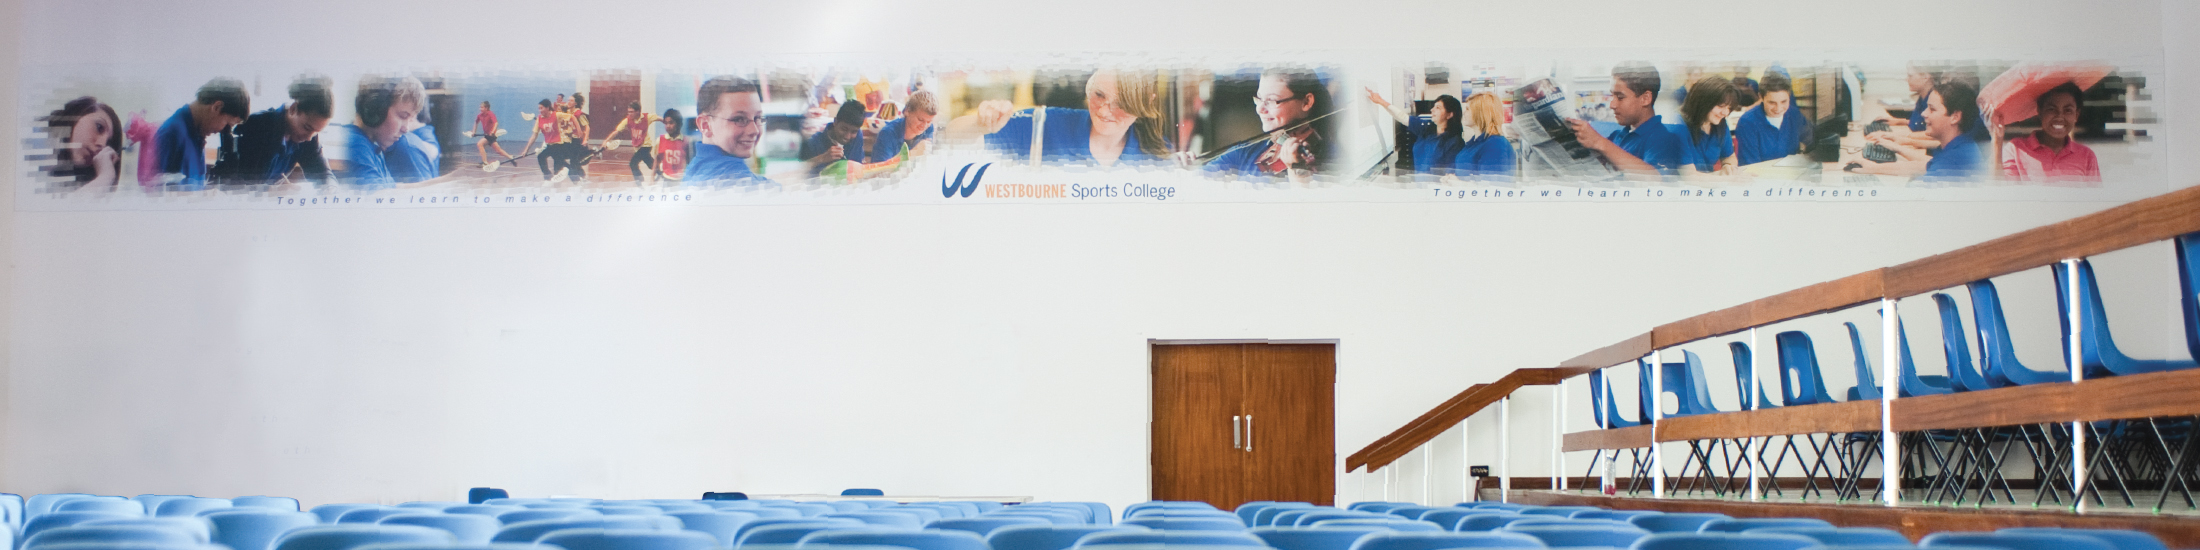 Vancols panoramic wall art in school hall